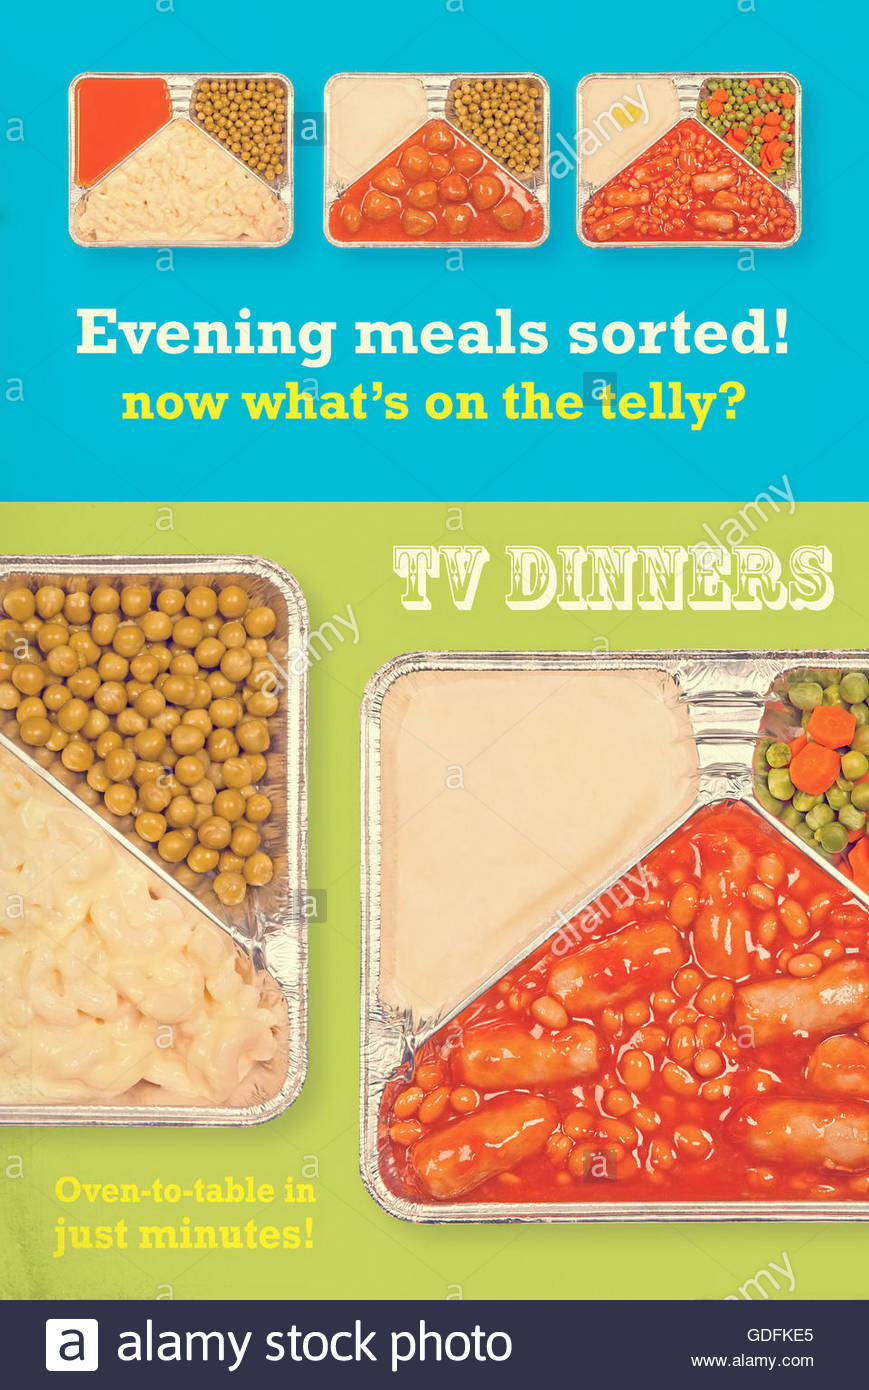 Junk food advertising television stock photos junk food tv dinner tray vintage retro advert meal aluminium food dishes stock image forumfinder Gallery